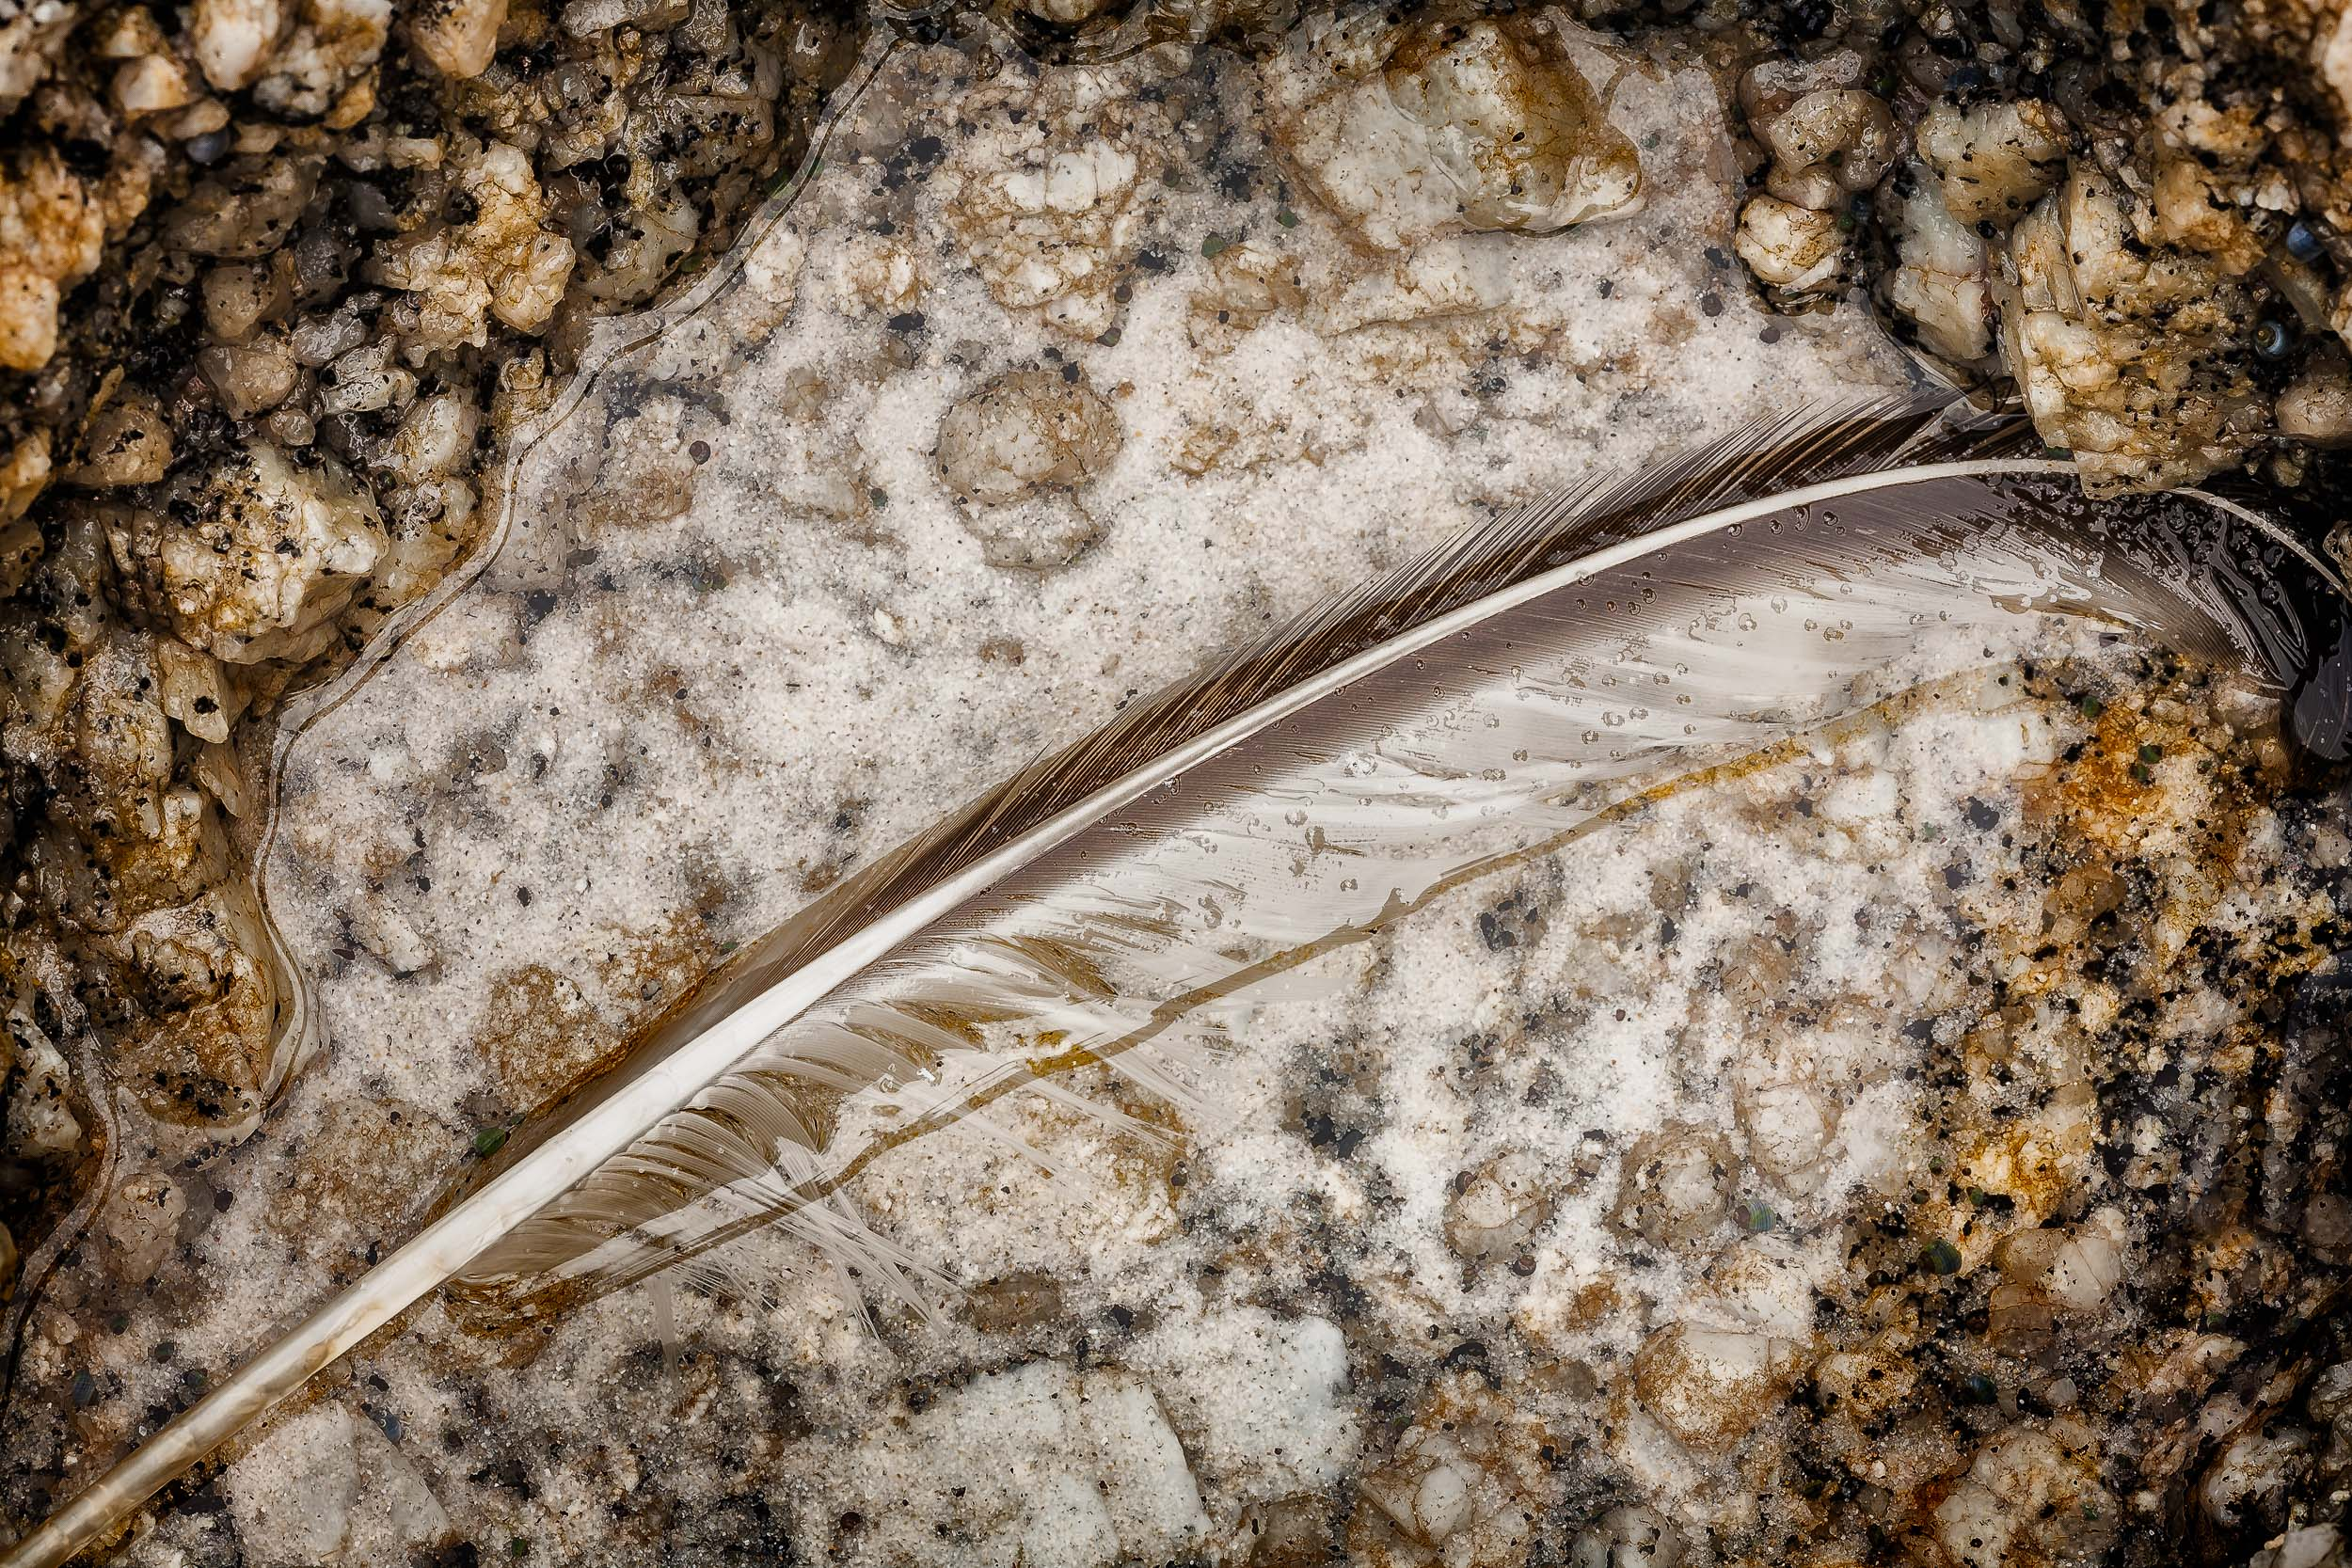 A feather, delicately positioned between rocks, lies in a shallow pool of water on  Squeaky Beach  in  Wilsons Promontory National Park, Australia .